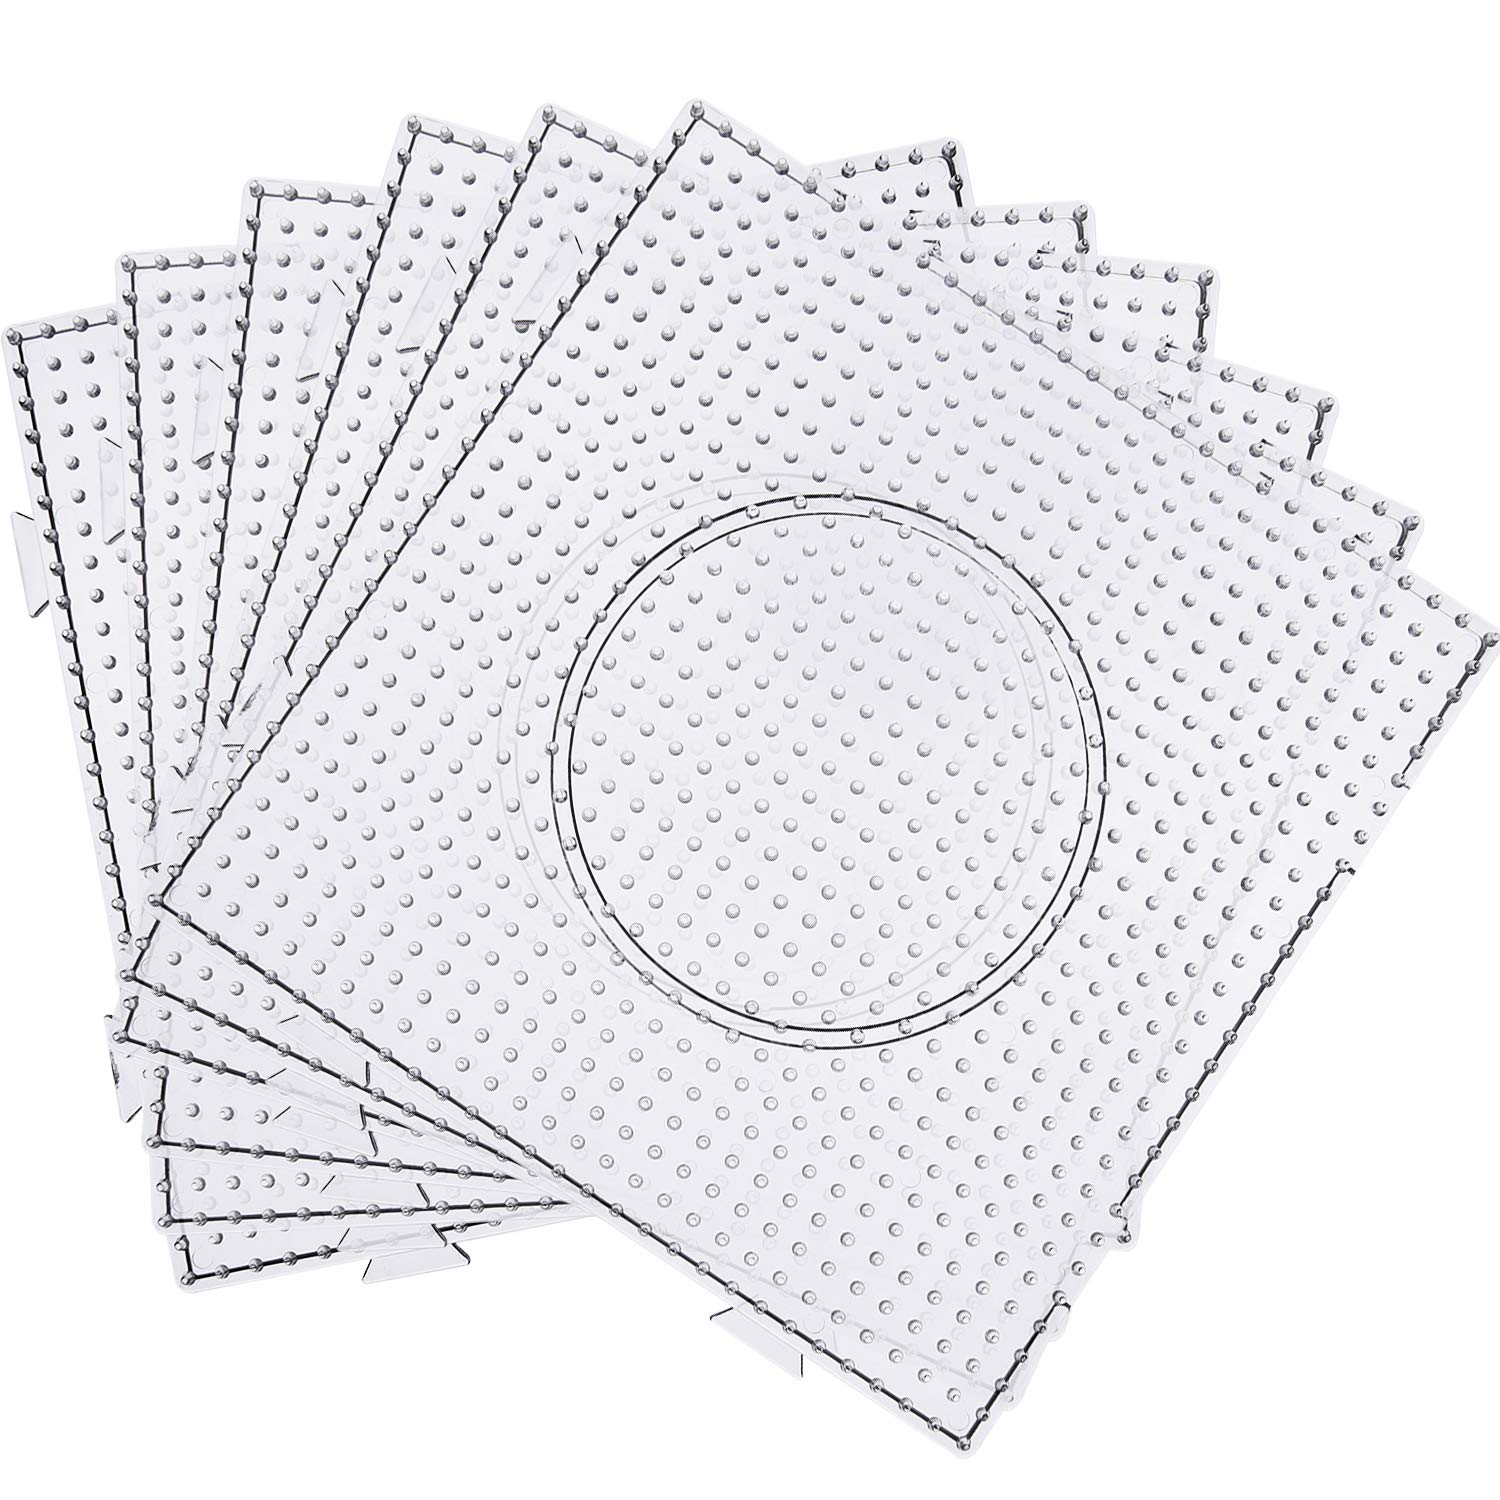 Maxdot 5 mm Large Square Fuse Beads Boards Clear Plastic Pegboards for Kids Craft Beads (12 Pieces) by Maxdot